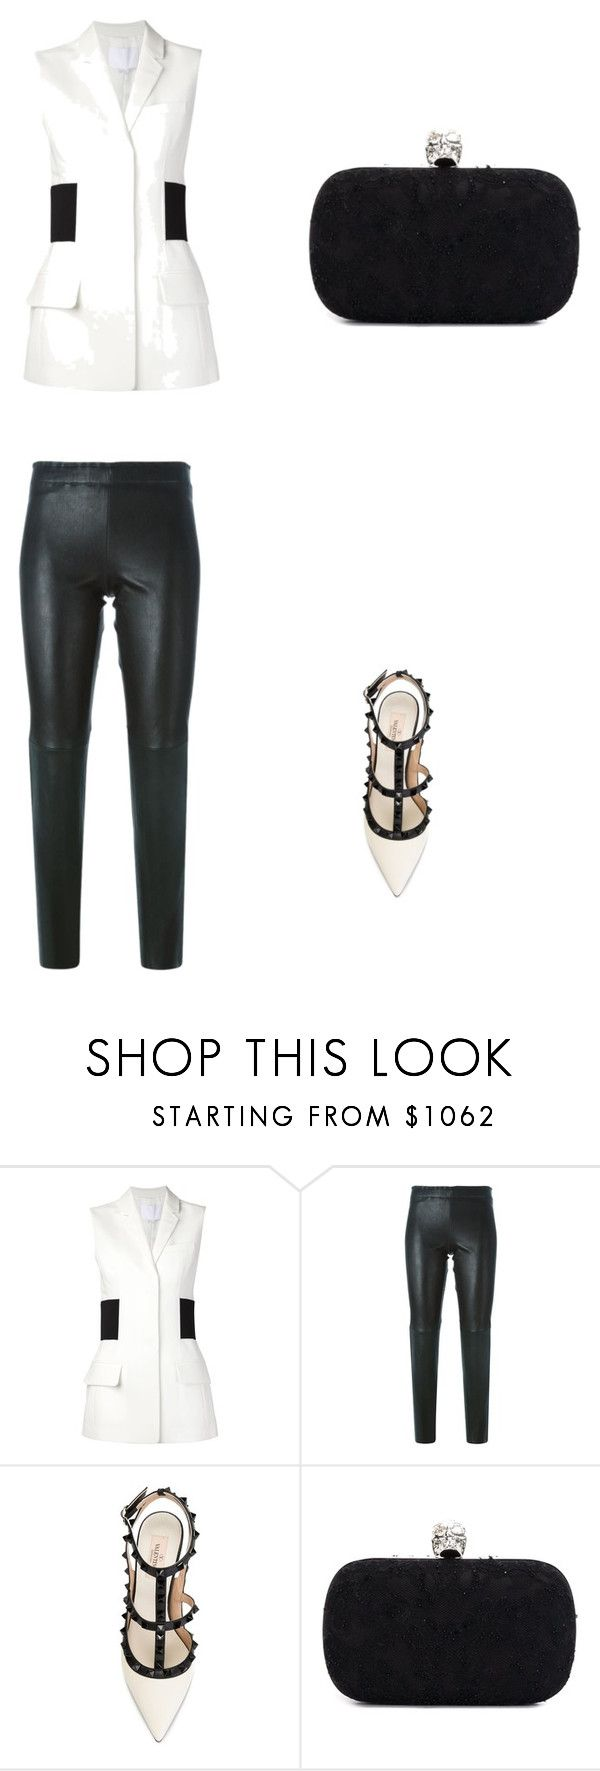 """""""<3"""" by martina-vacca ❤ liked on Polyvore featuring moda, Alexander Wang, STOULS, Valentino, Alexander McQueen, women's clothing, women's fashion, women, female y woman"""